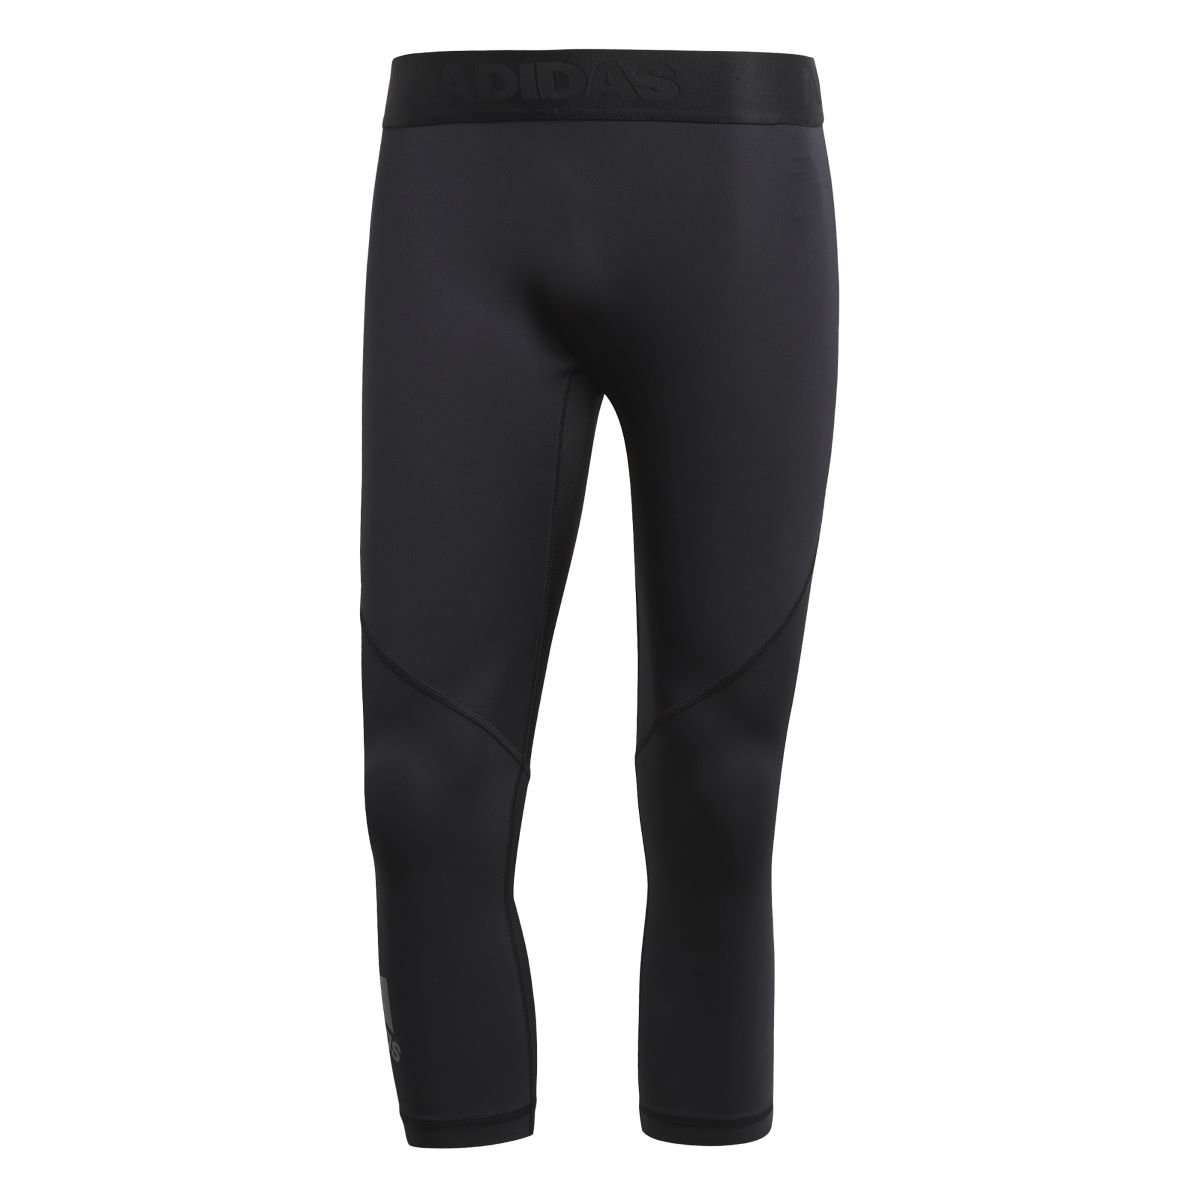 Corsaire adidas Alphaskin Sport - L BLACK Sous-vêtements compression